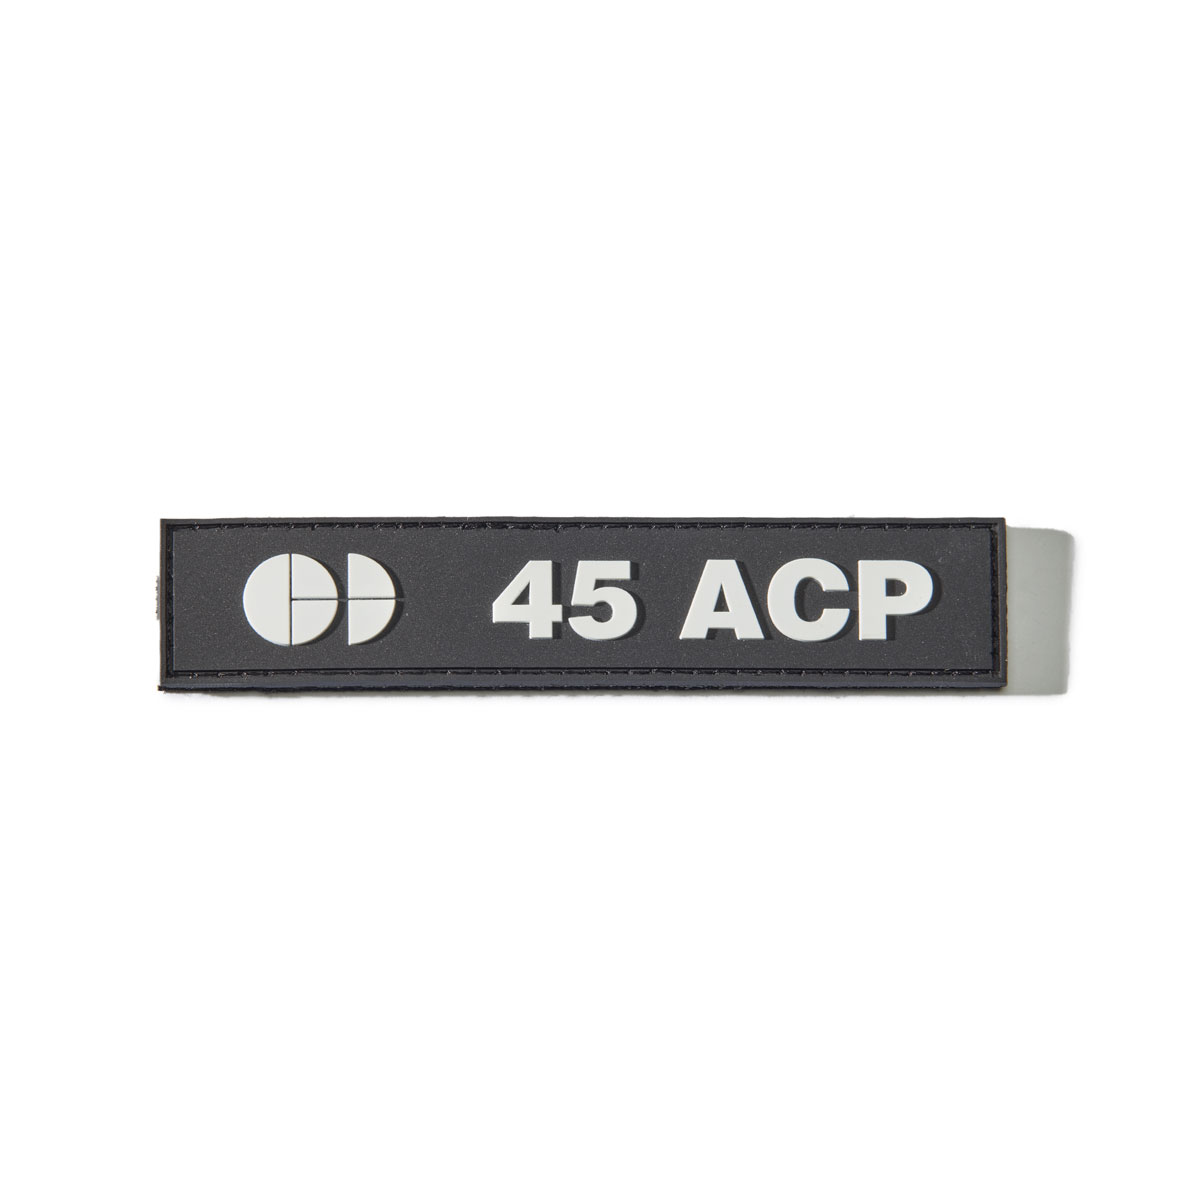 Cloud Defensive Ammo Patch 45 ACP